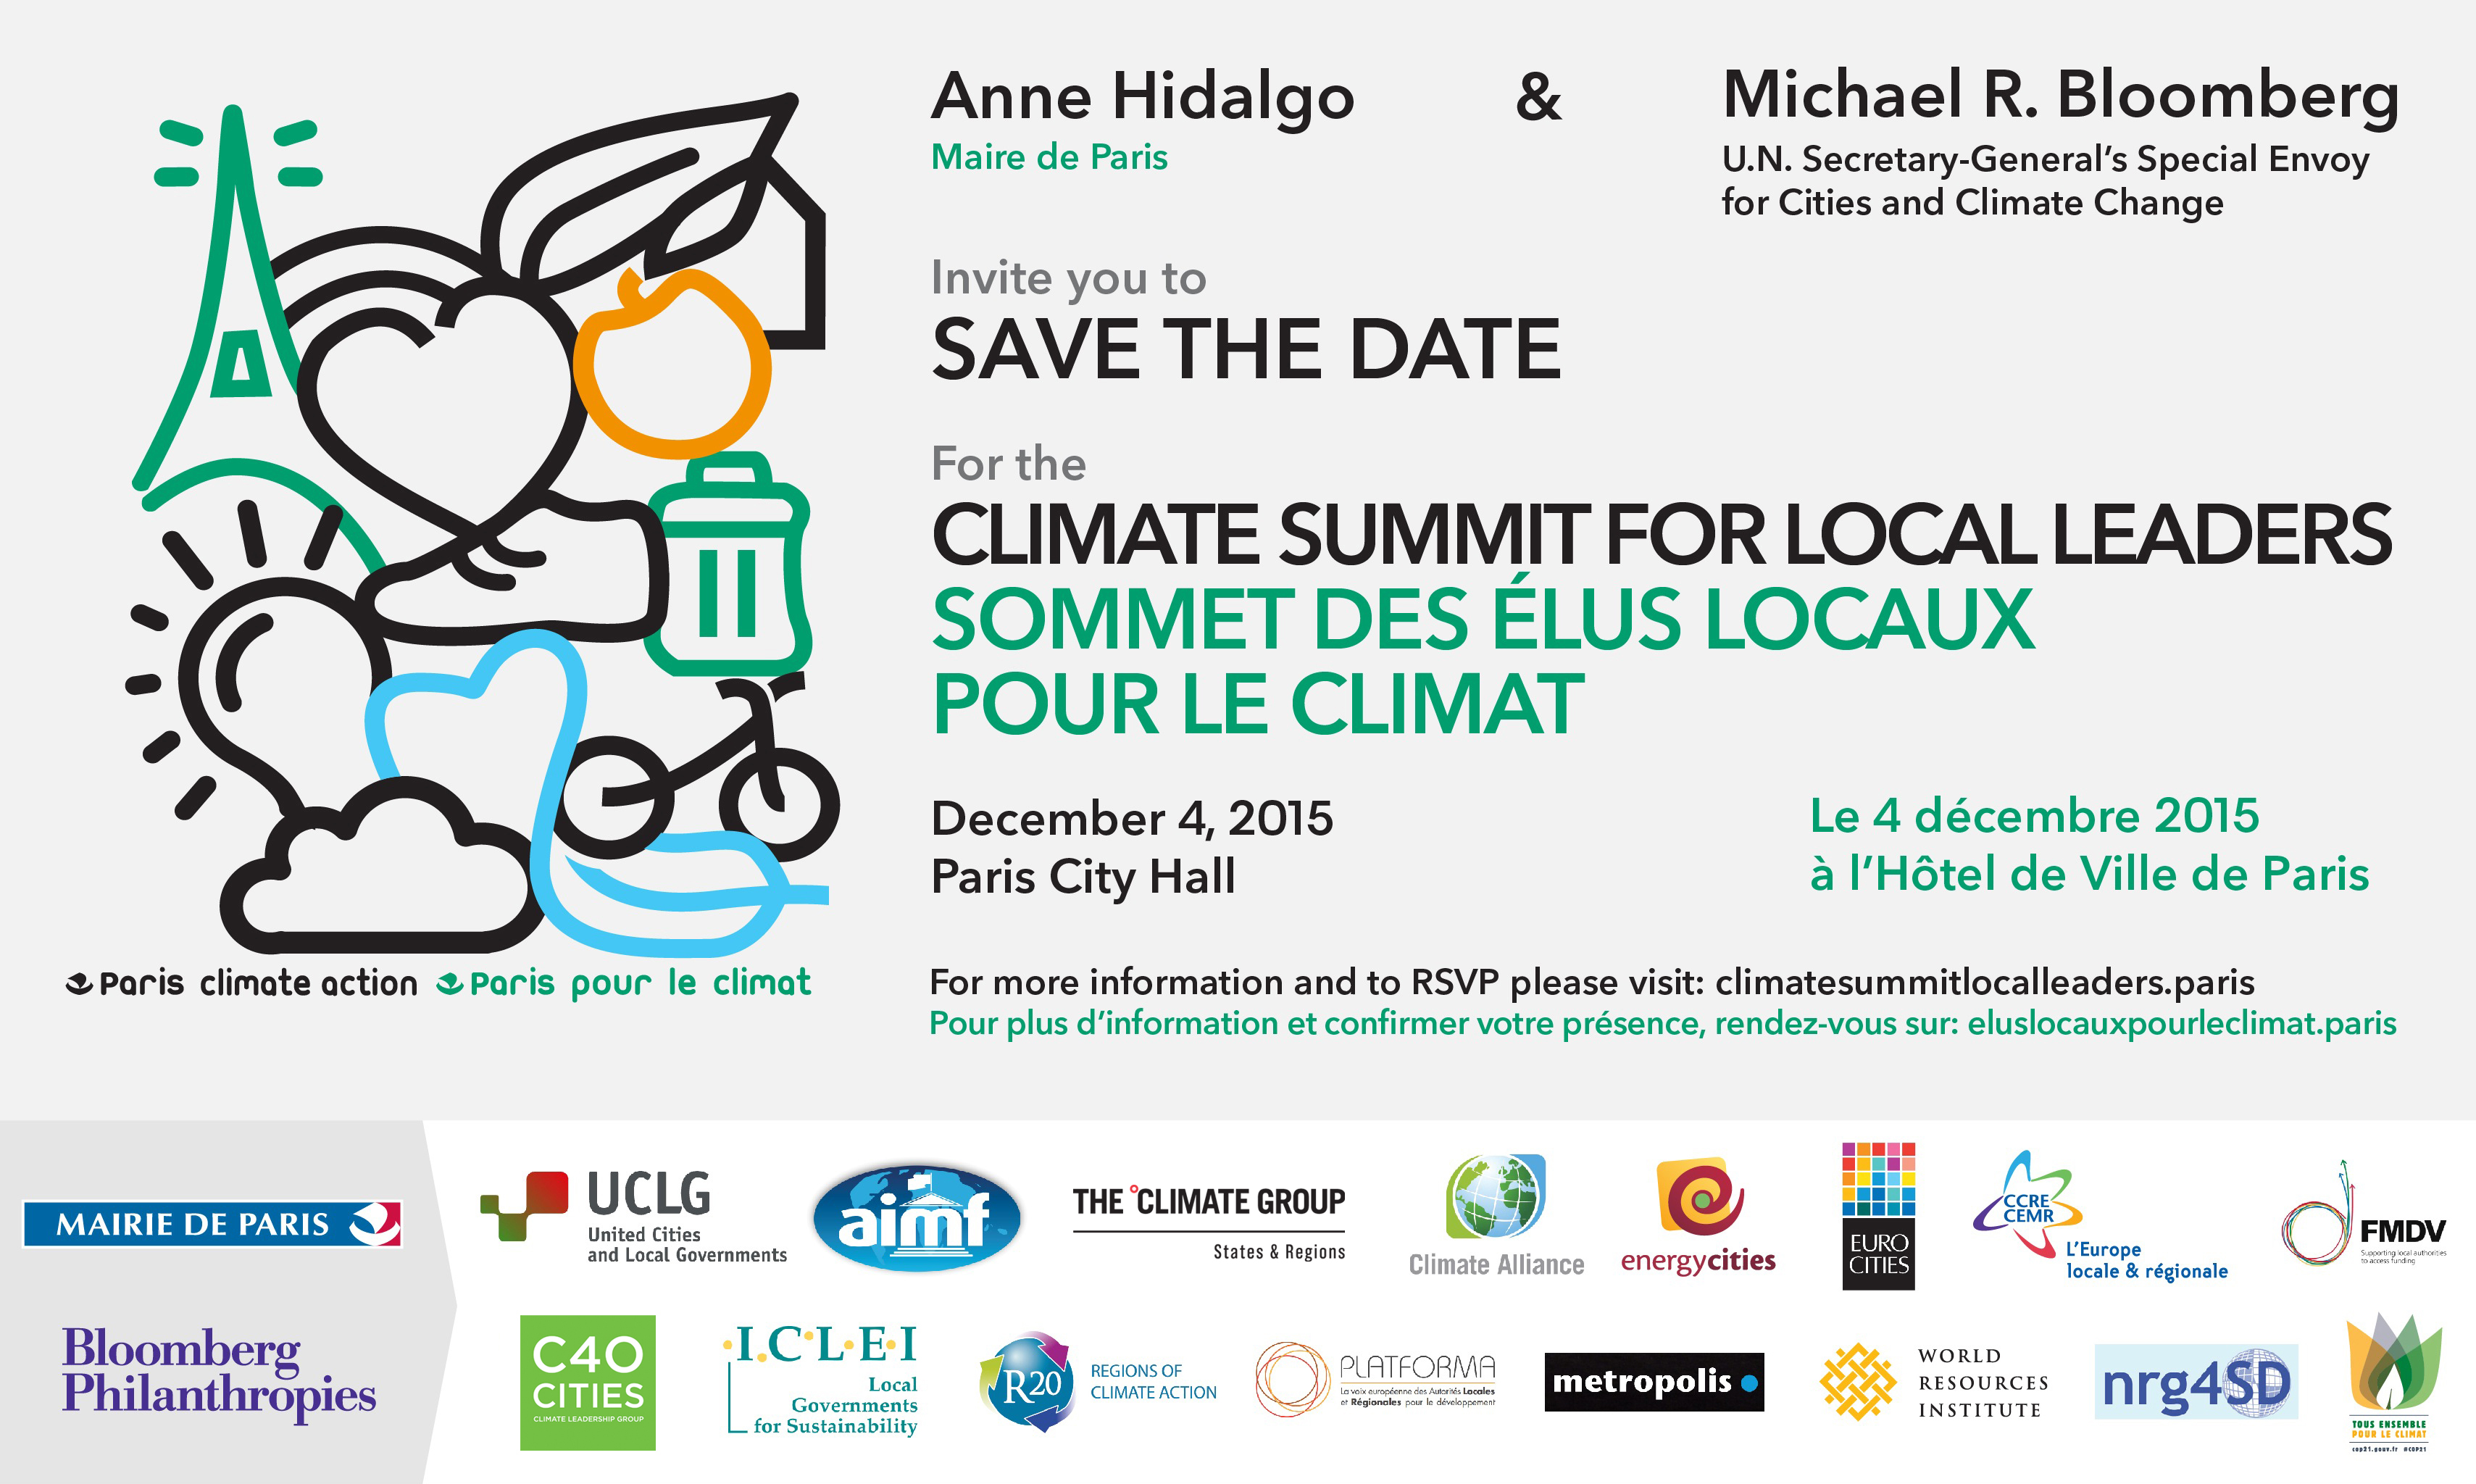 Climate Summit for Local Leaders